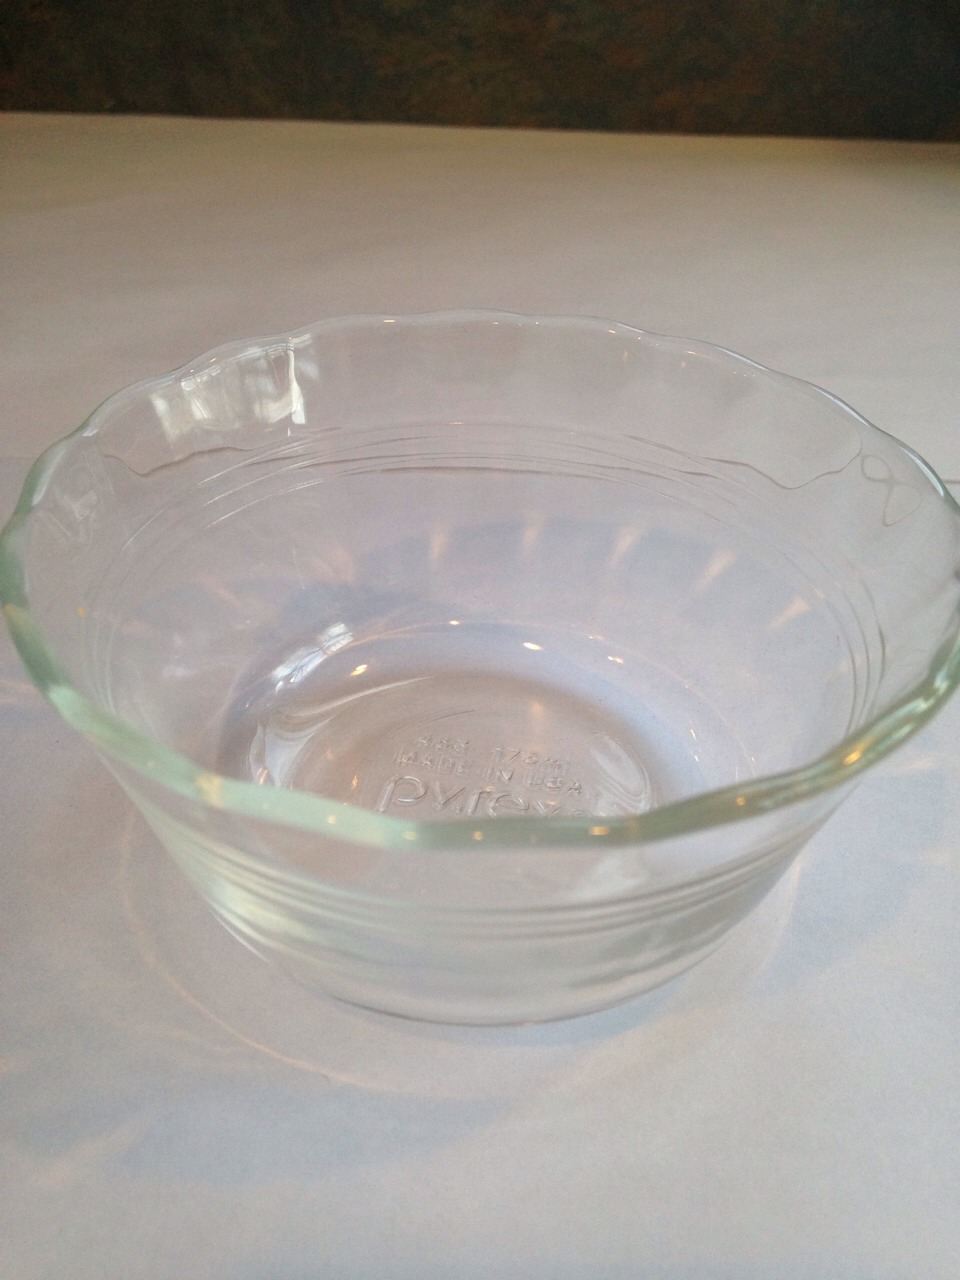 Take a small glass bowl